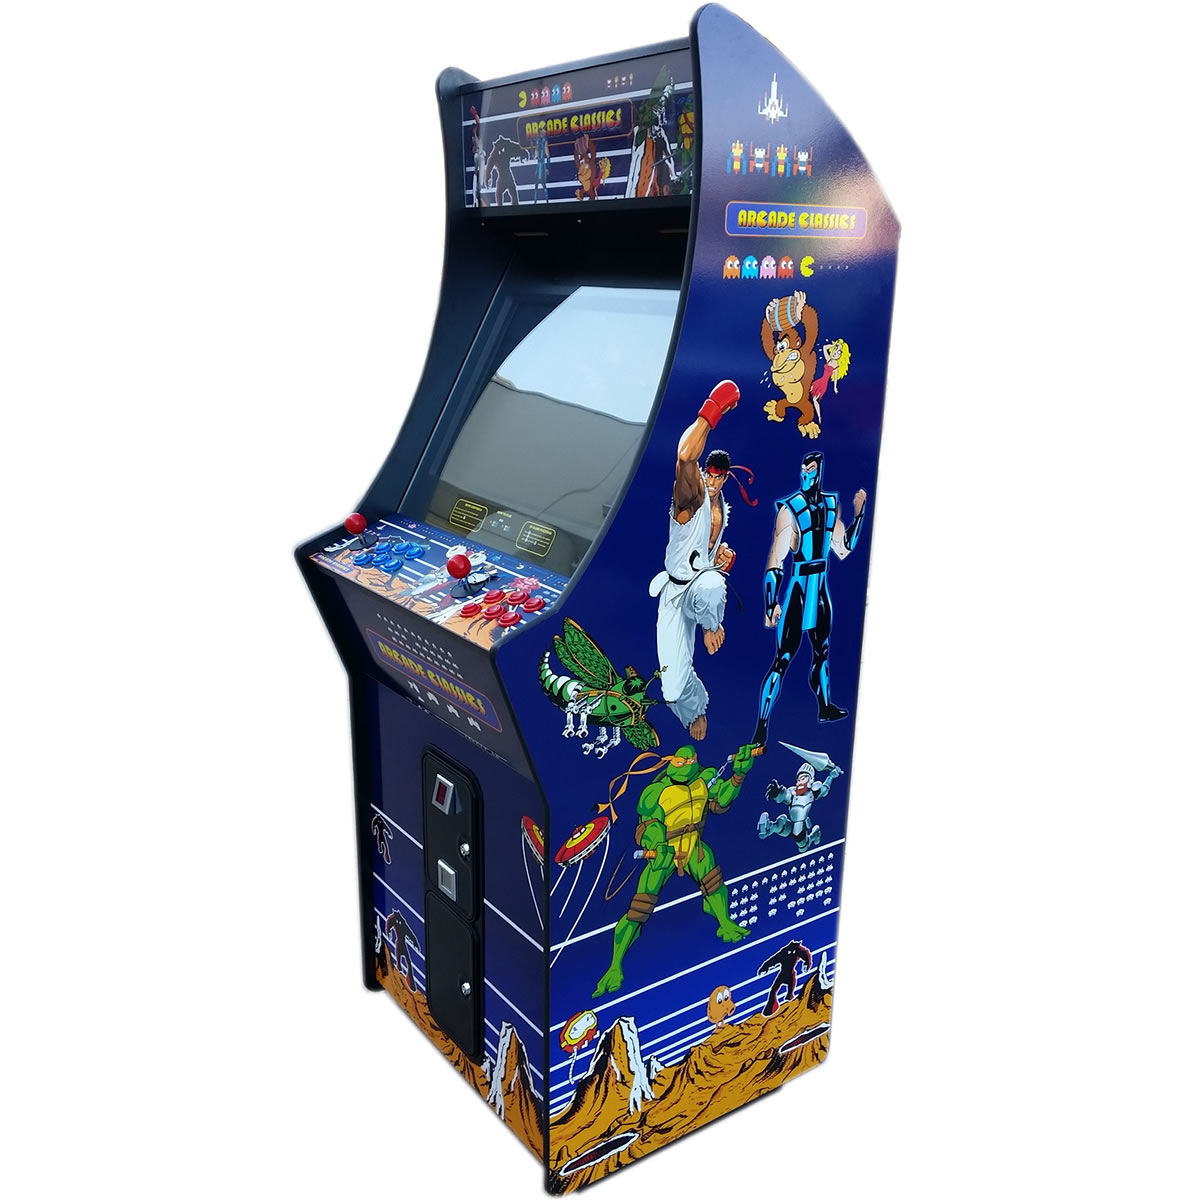 Classic Table Arcade Games Arcade Classics Arcade Games And Pinball Sales And Restoration